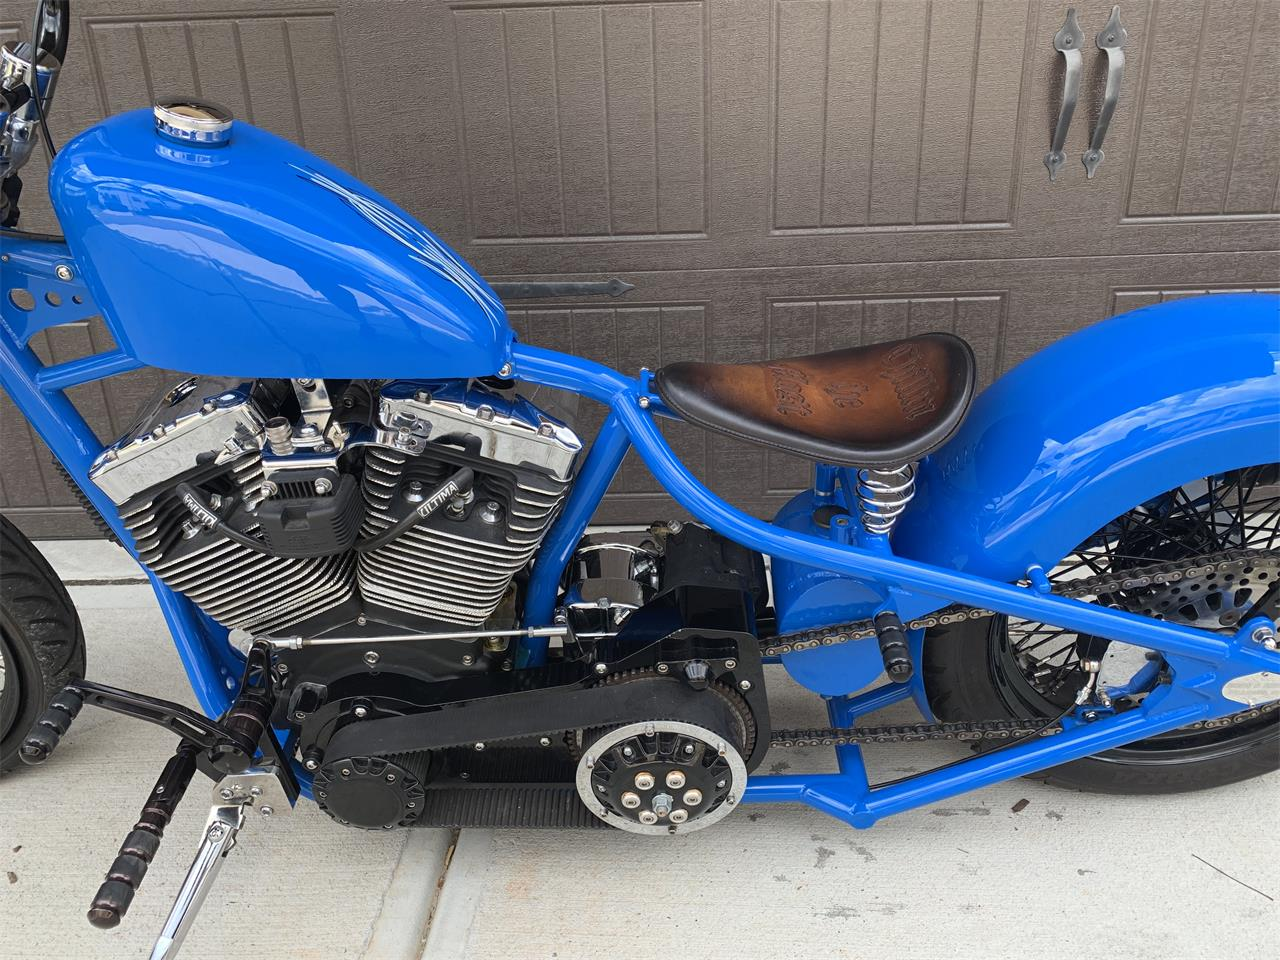 2016 Custom Motorcycle for sale in Apex, NC – photo 3